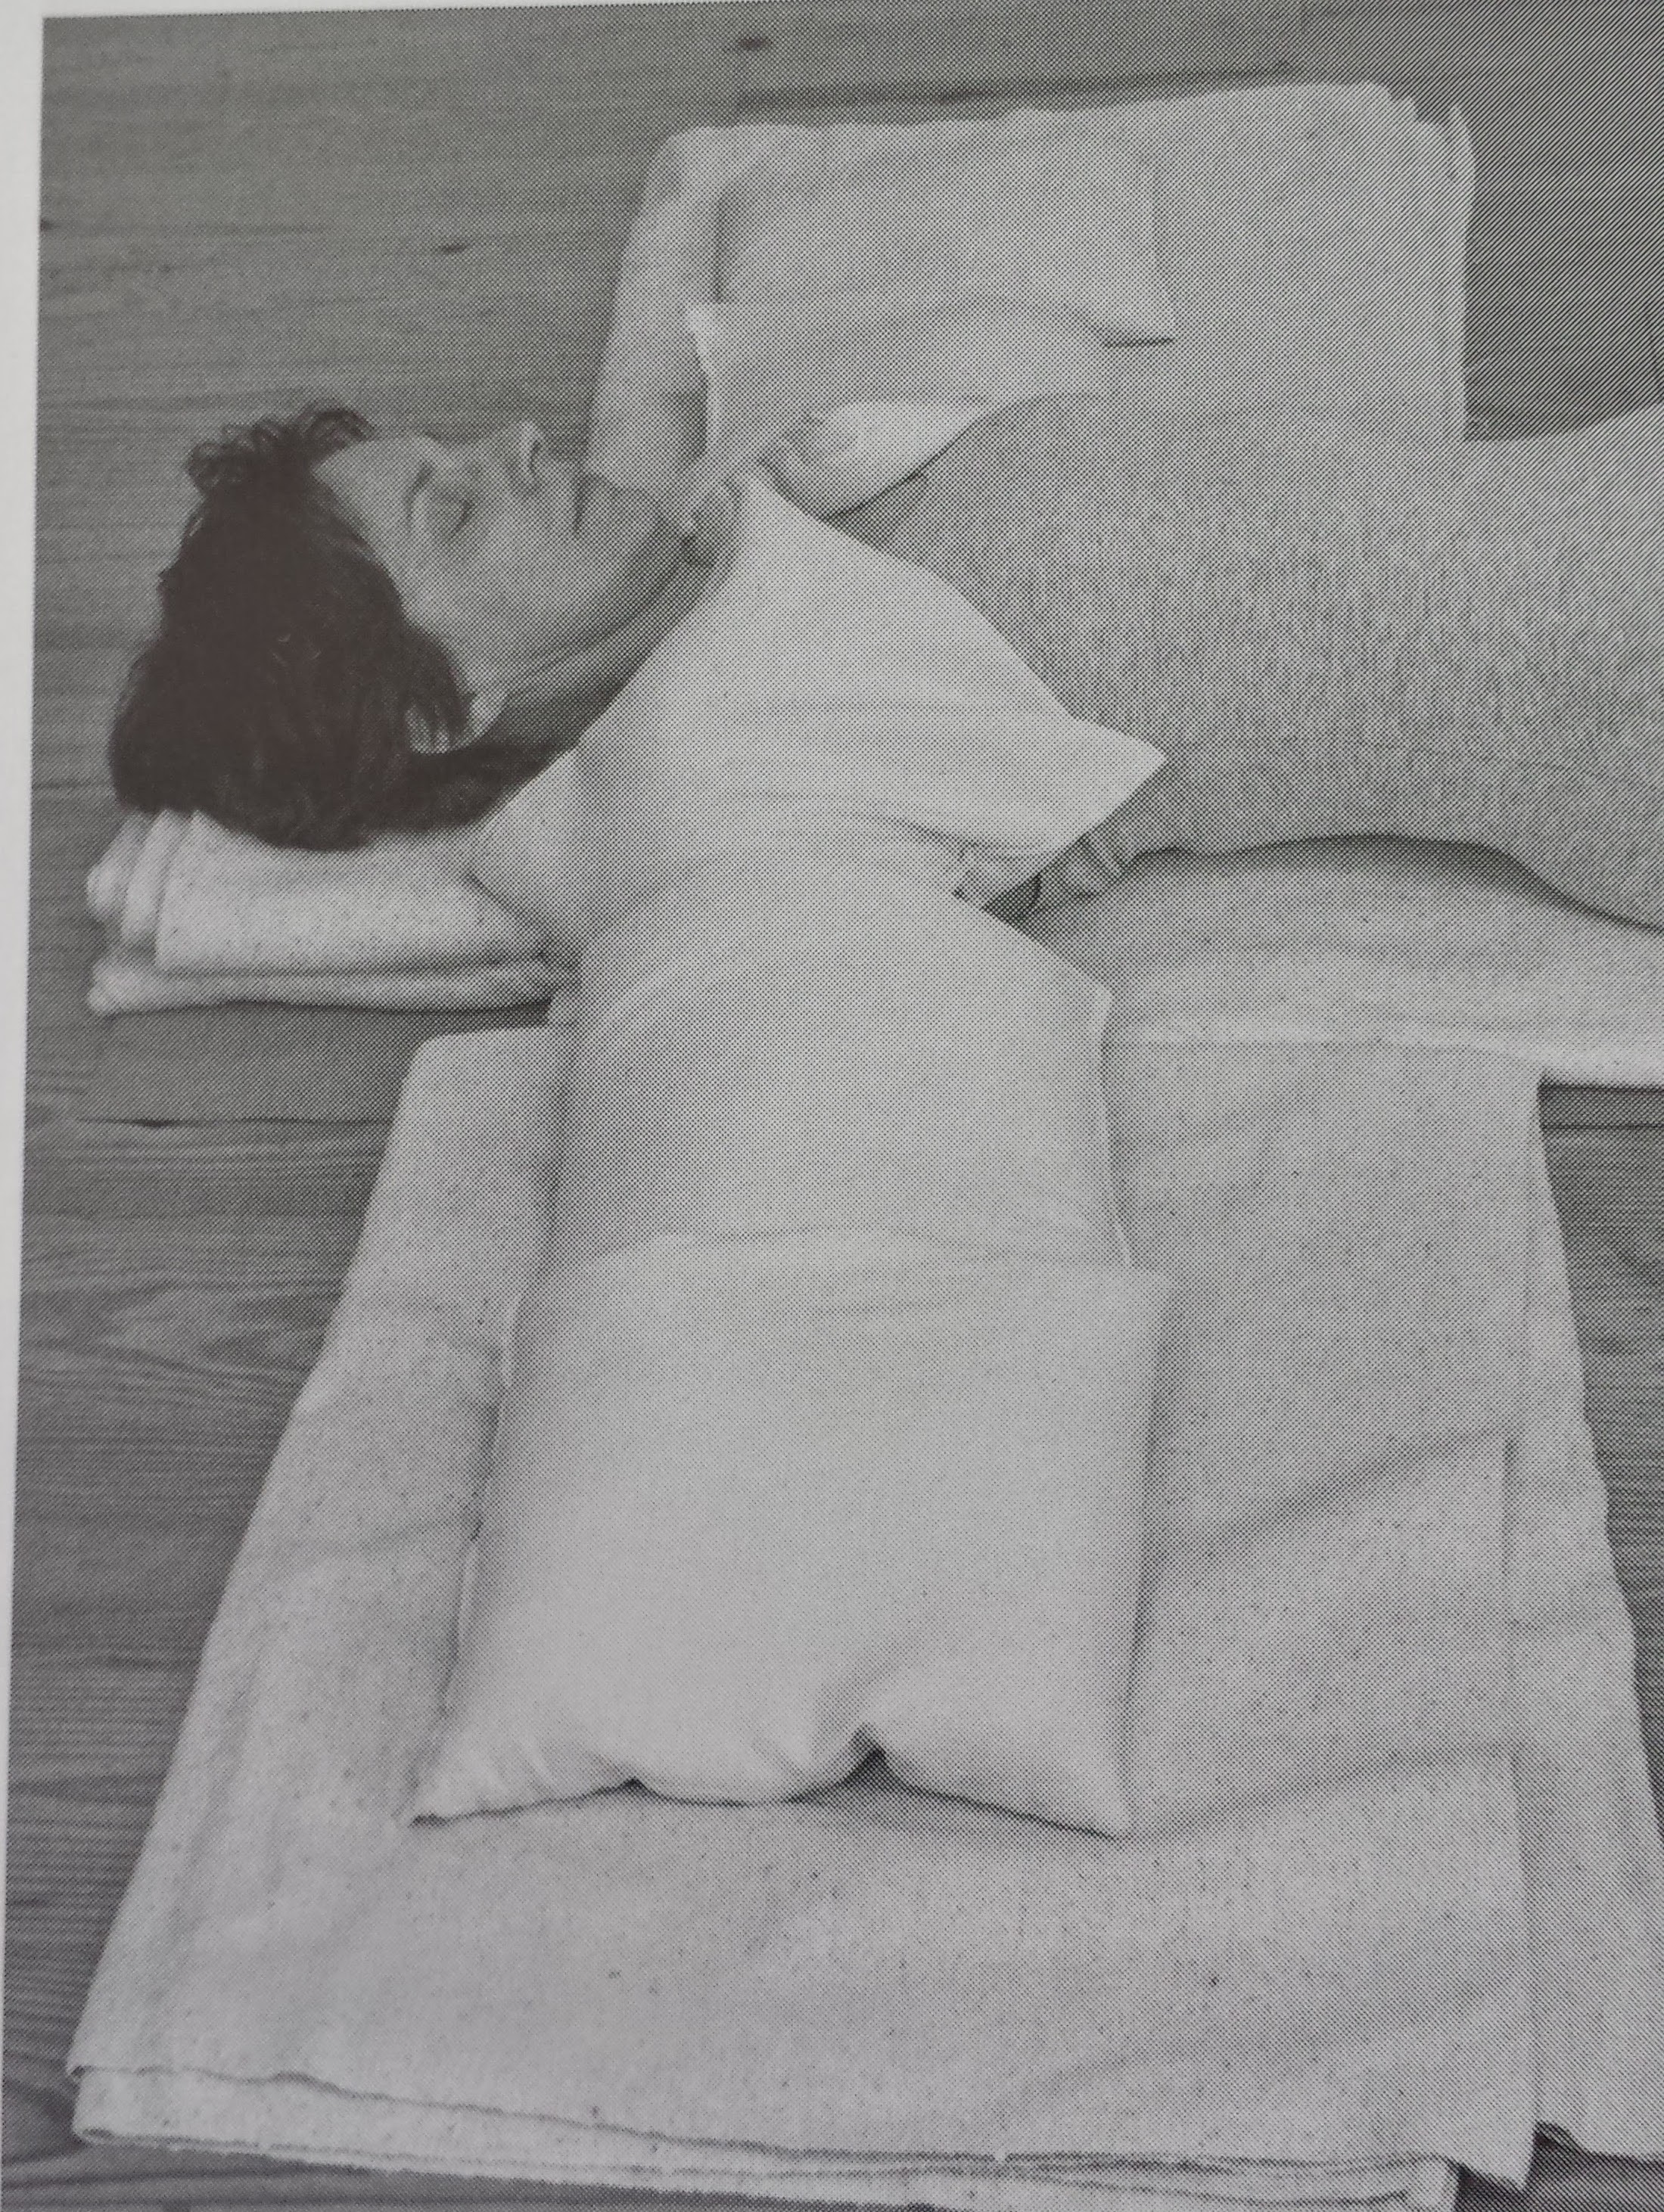 Shoulder Savasana with weights on the shoulders and arms. Sandbags are used here but you can get creative!